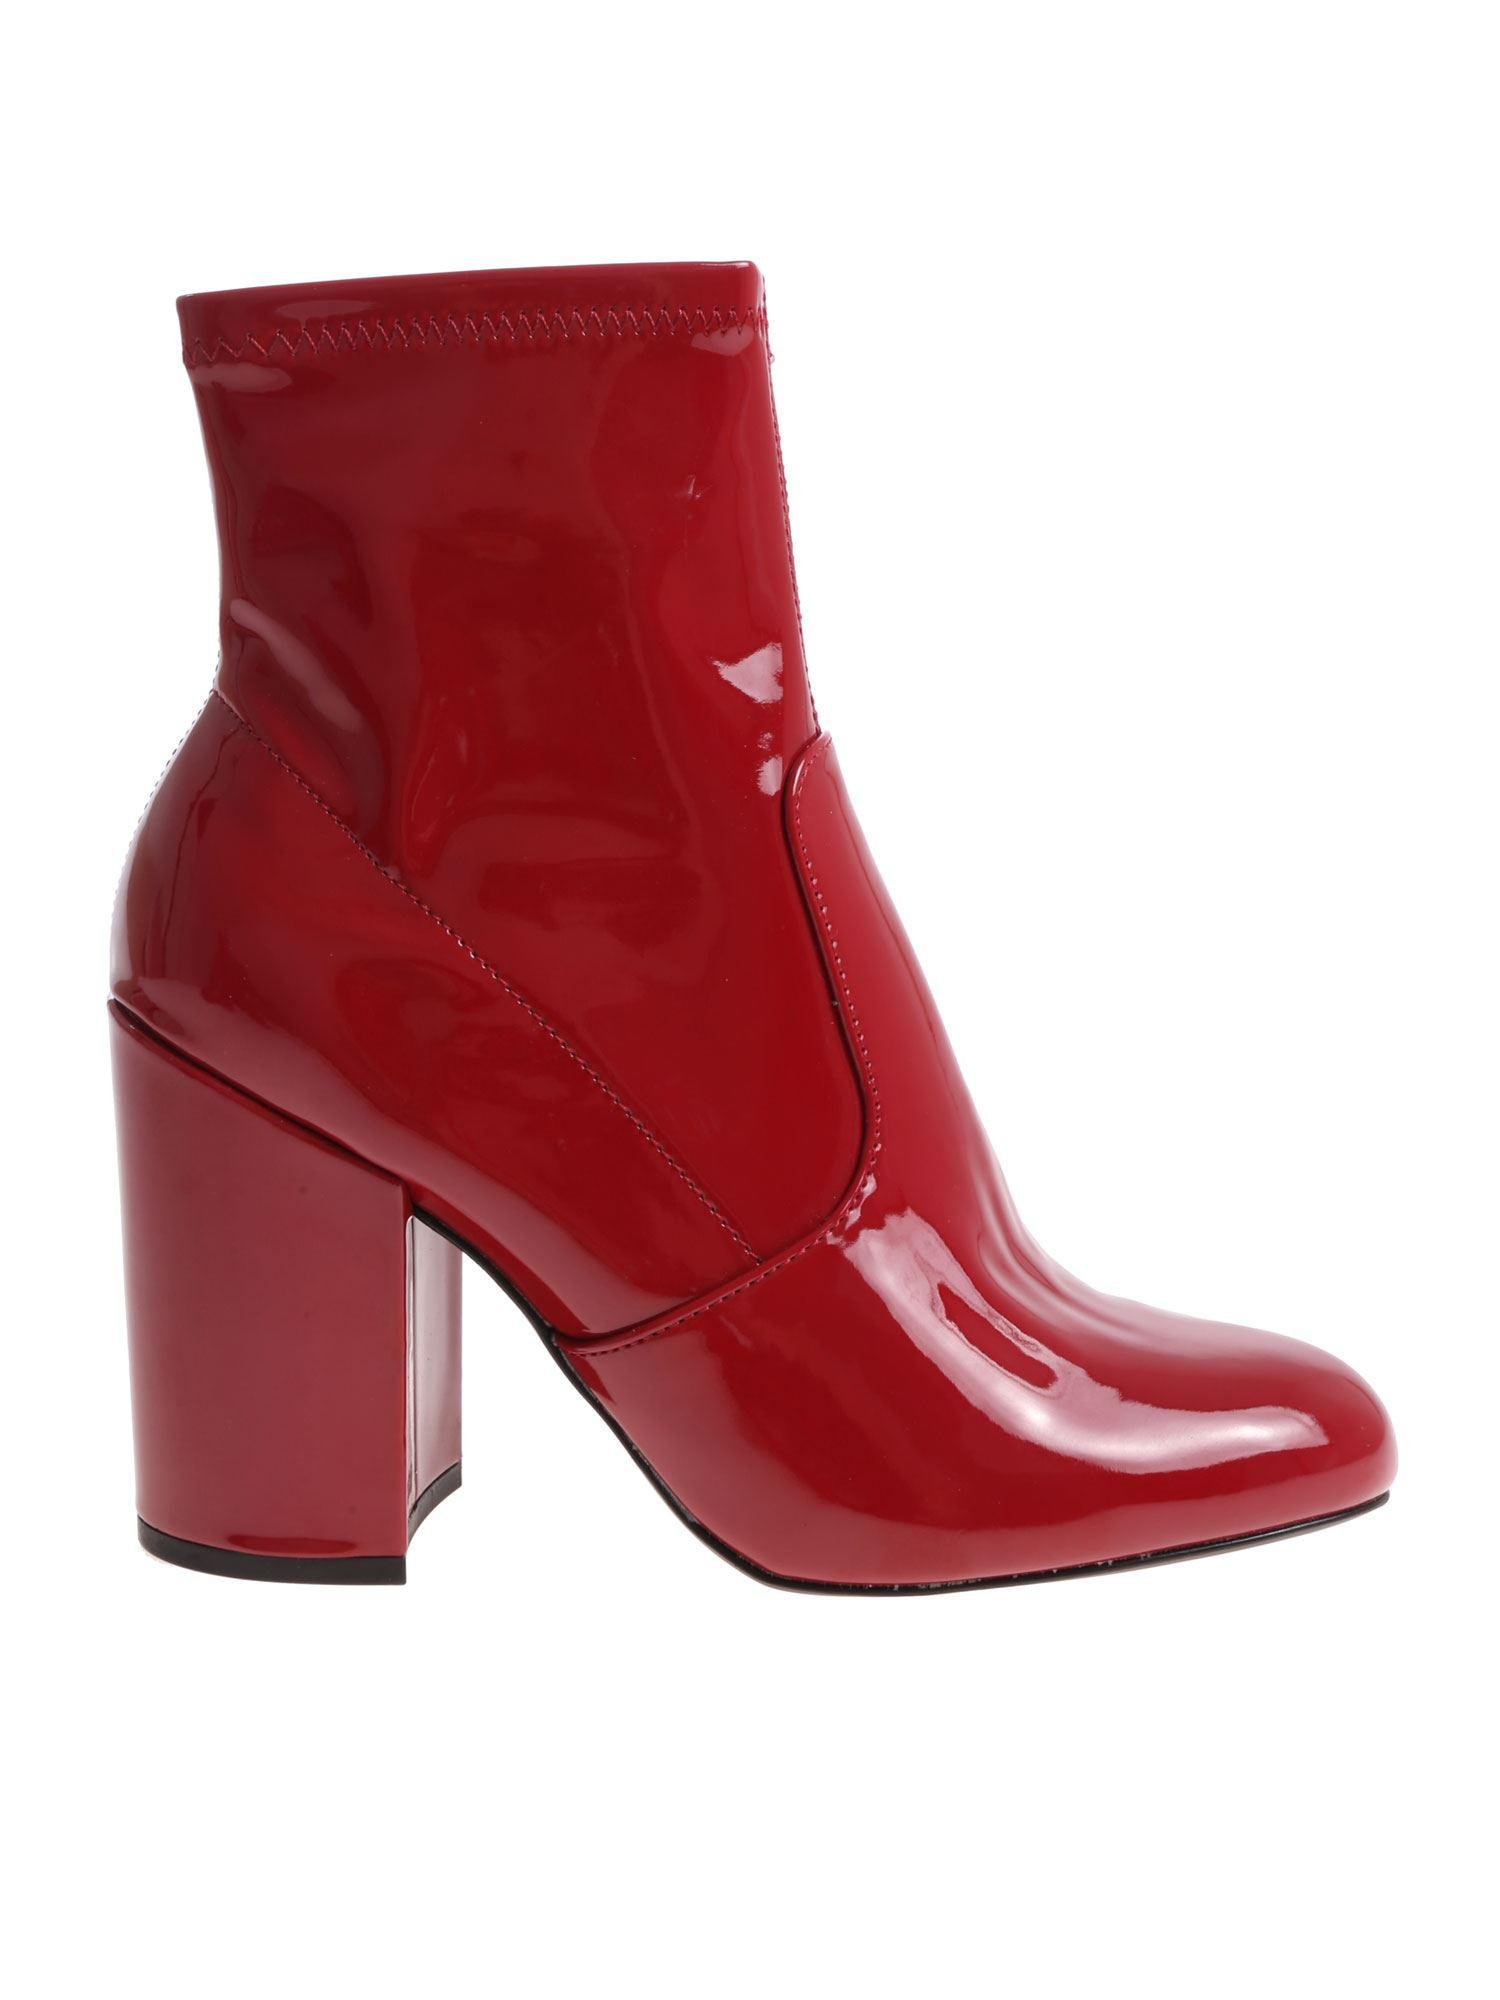 0d376fe9bc0 Lyst - Steve Madden  s Gaze Ankle Boots in Red